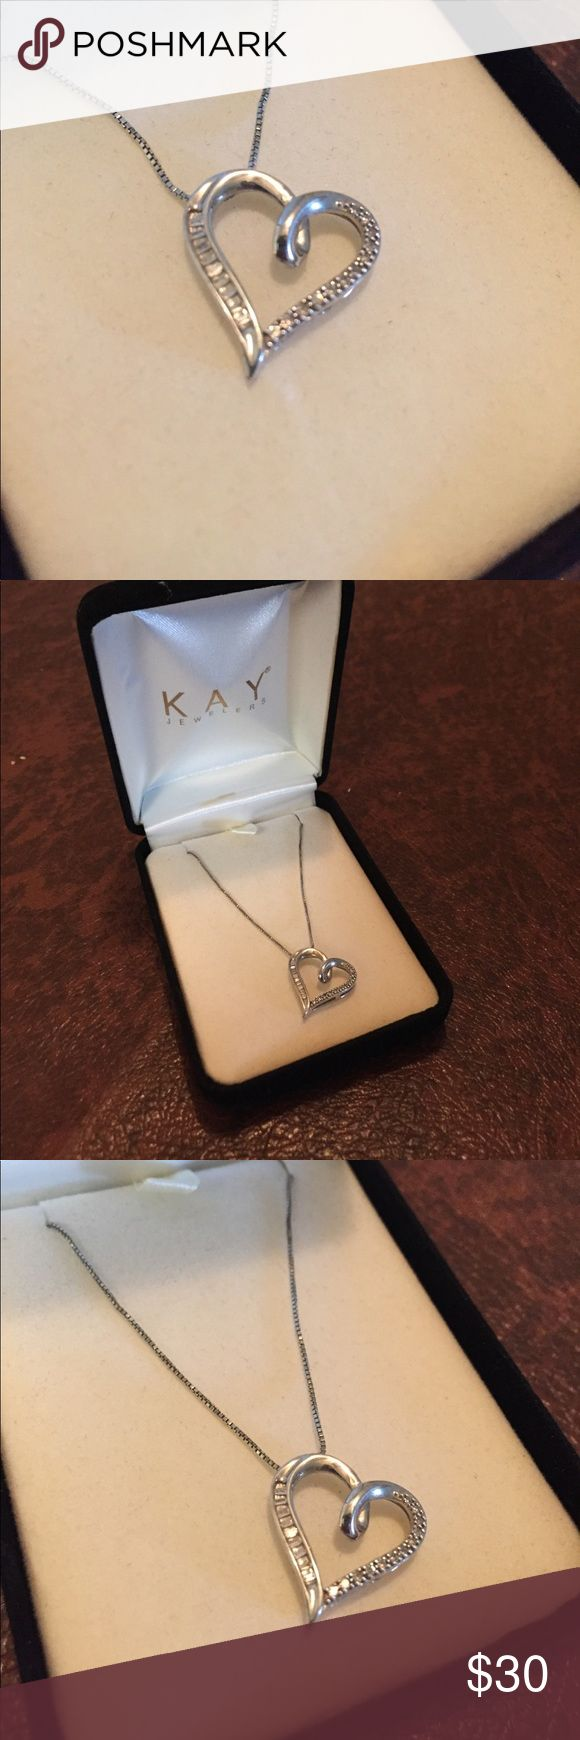 Diamond Heart Necklace 1/10 Carat, Sterling Silver This necklace has only been worn a handful of times, beautiful condition. All specifics are listed from the Kay website in the pictures. Kay Jewelers Jewelry Necklaces